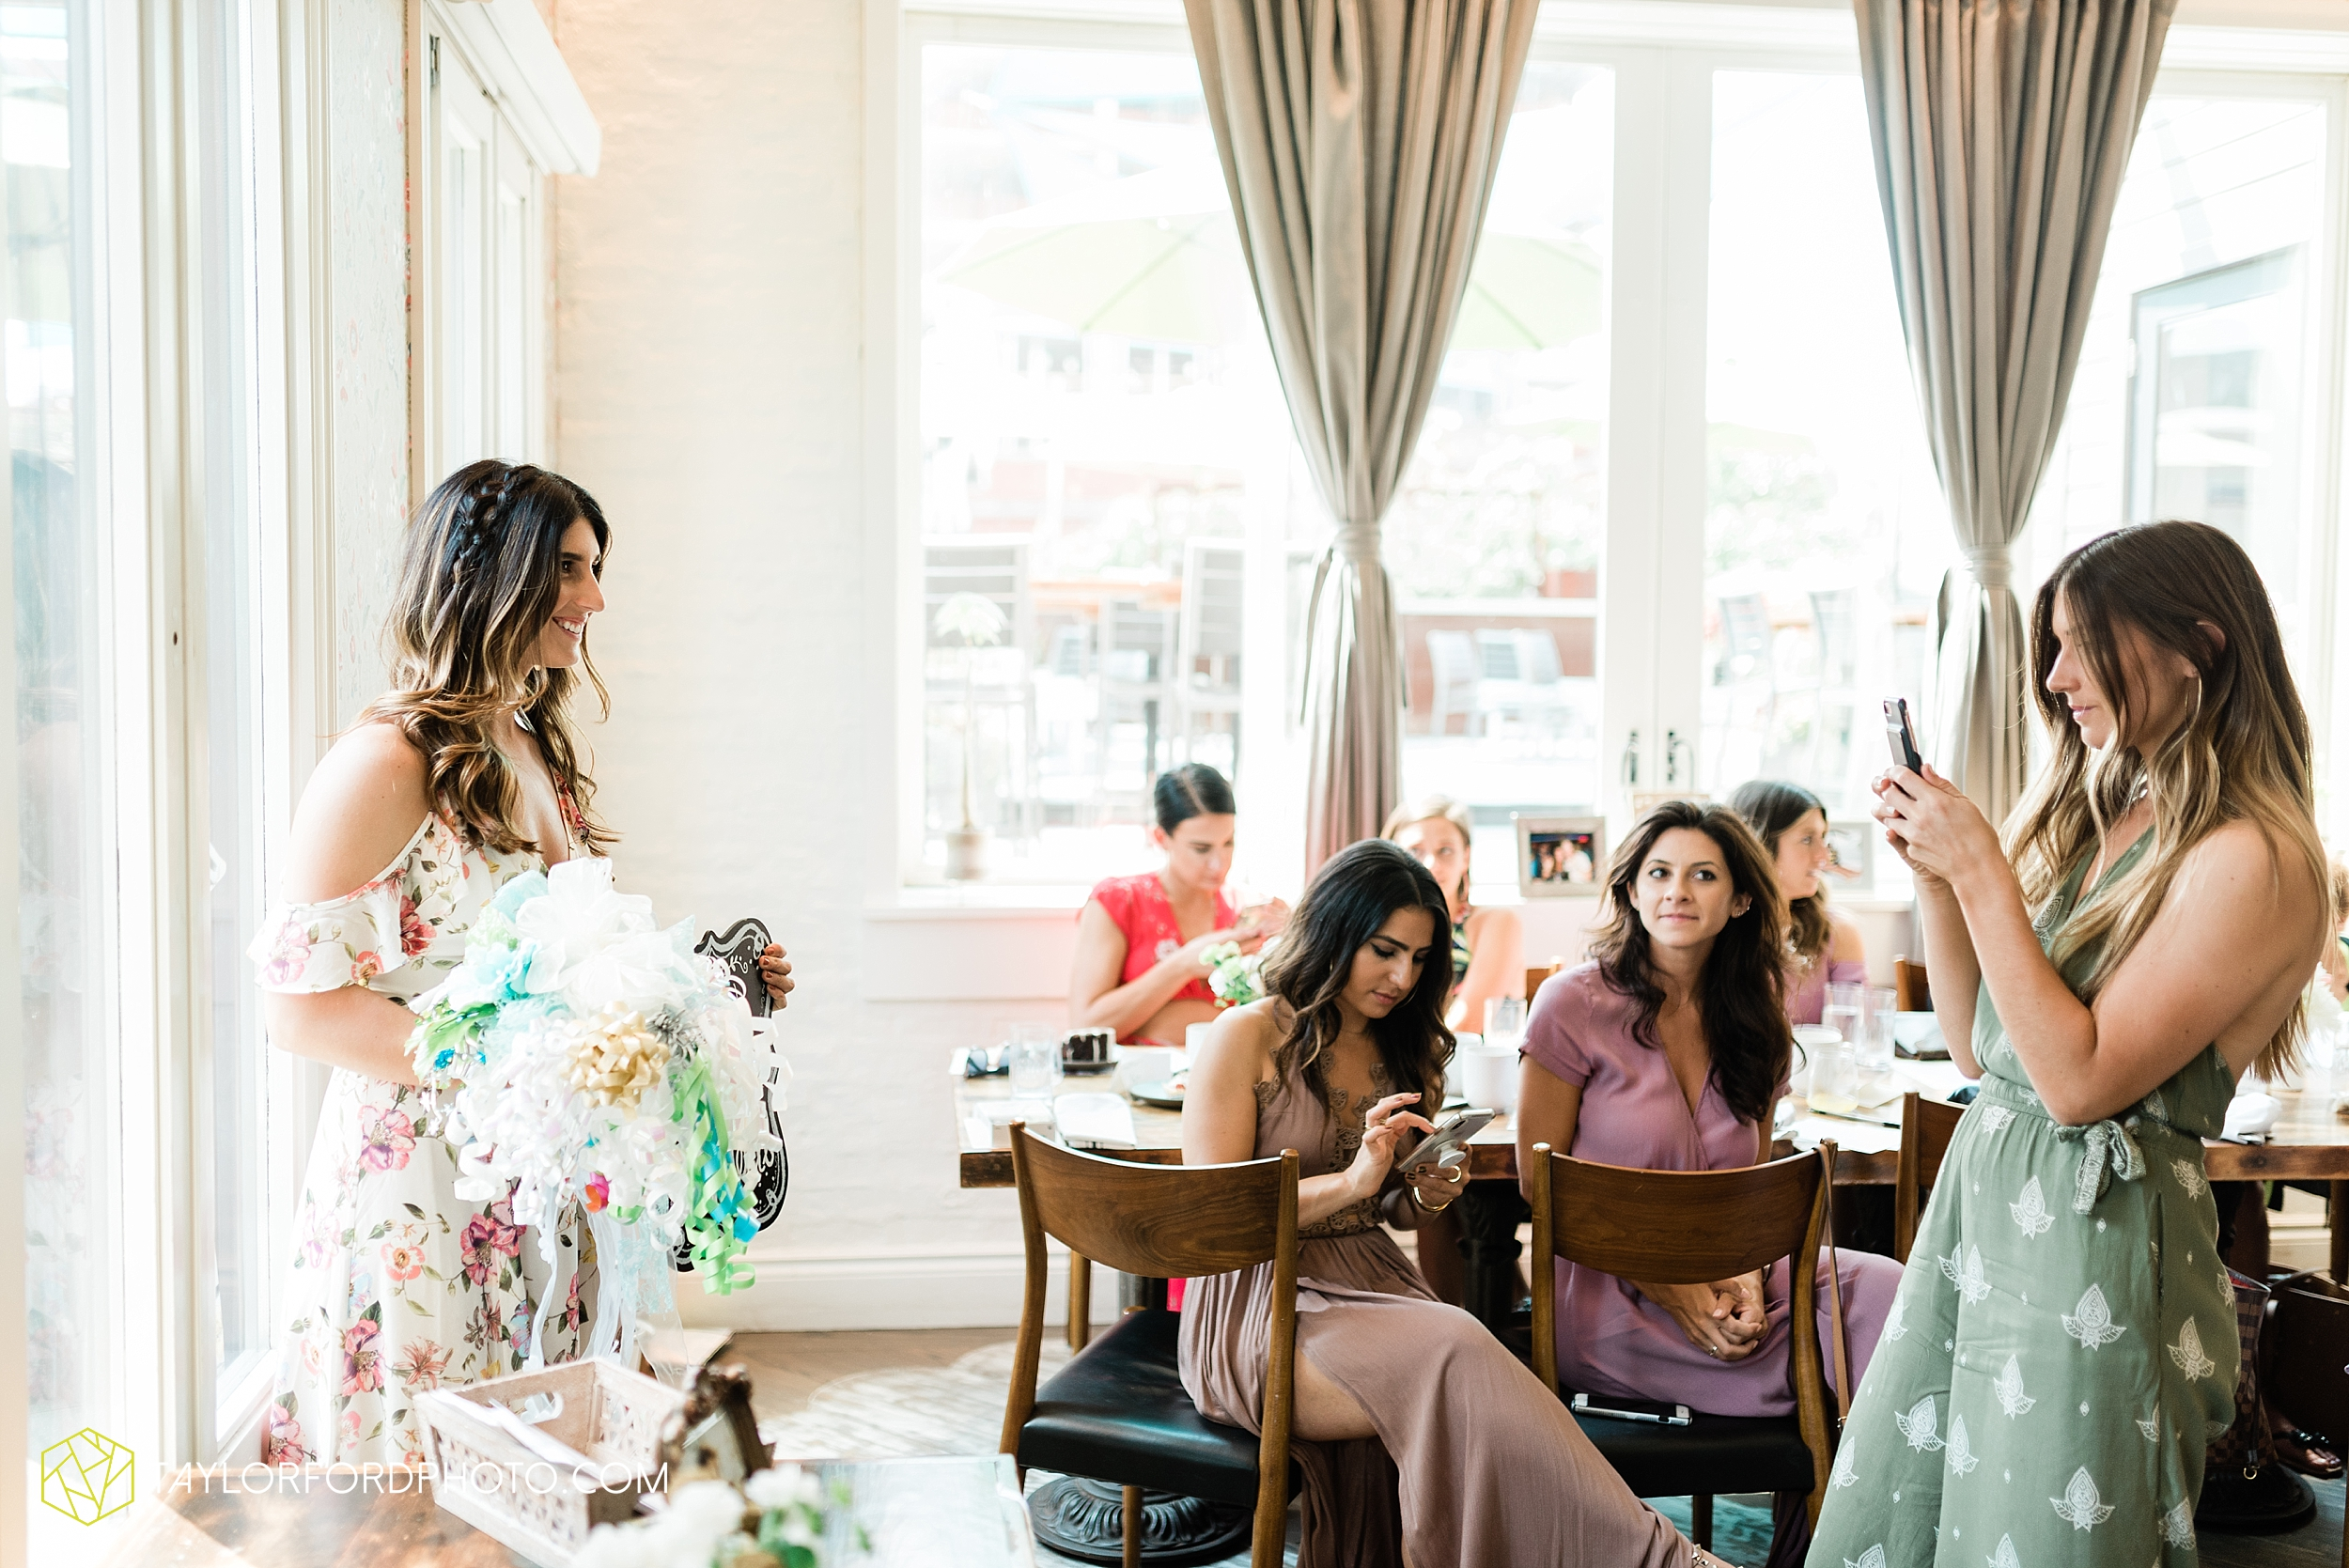 chicago-illinois-bridal-shower-little-goat-diner-west-loop-wedding-photographer-taylor-ford-photographer_8862.jpg